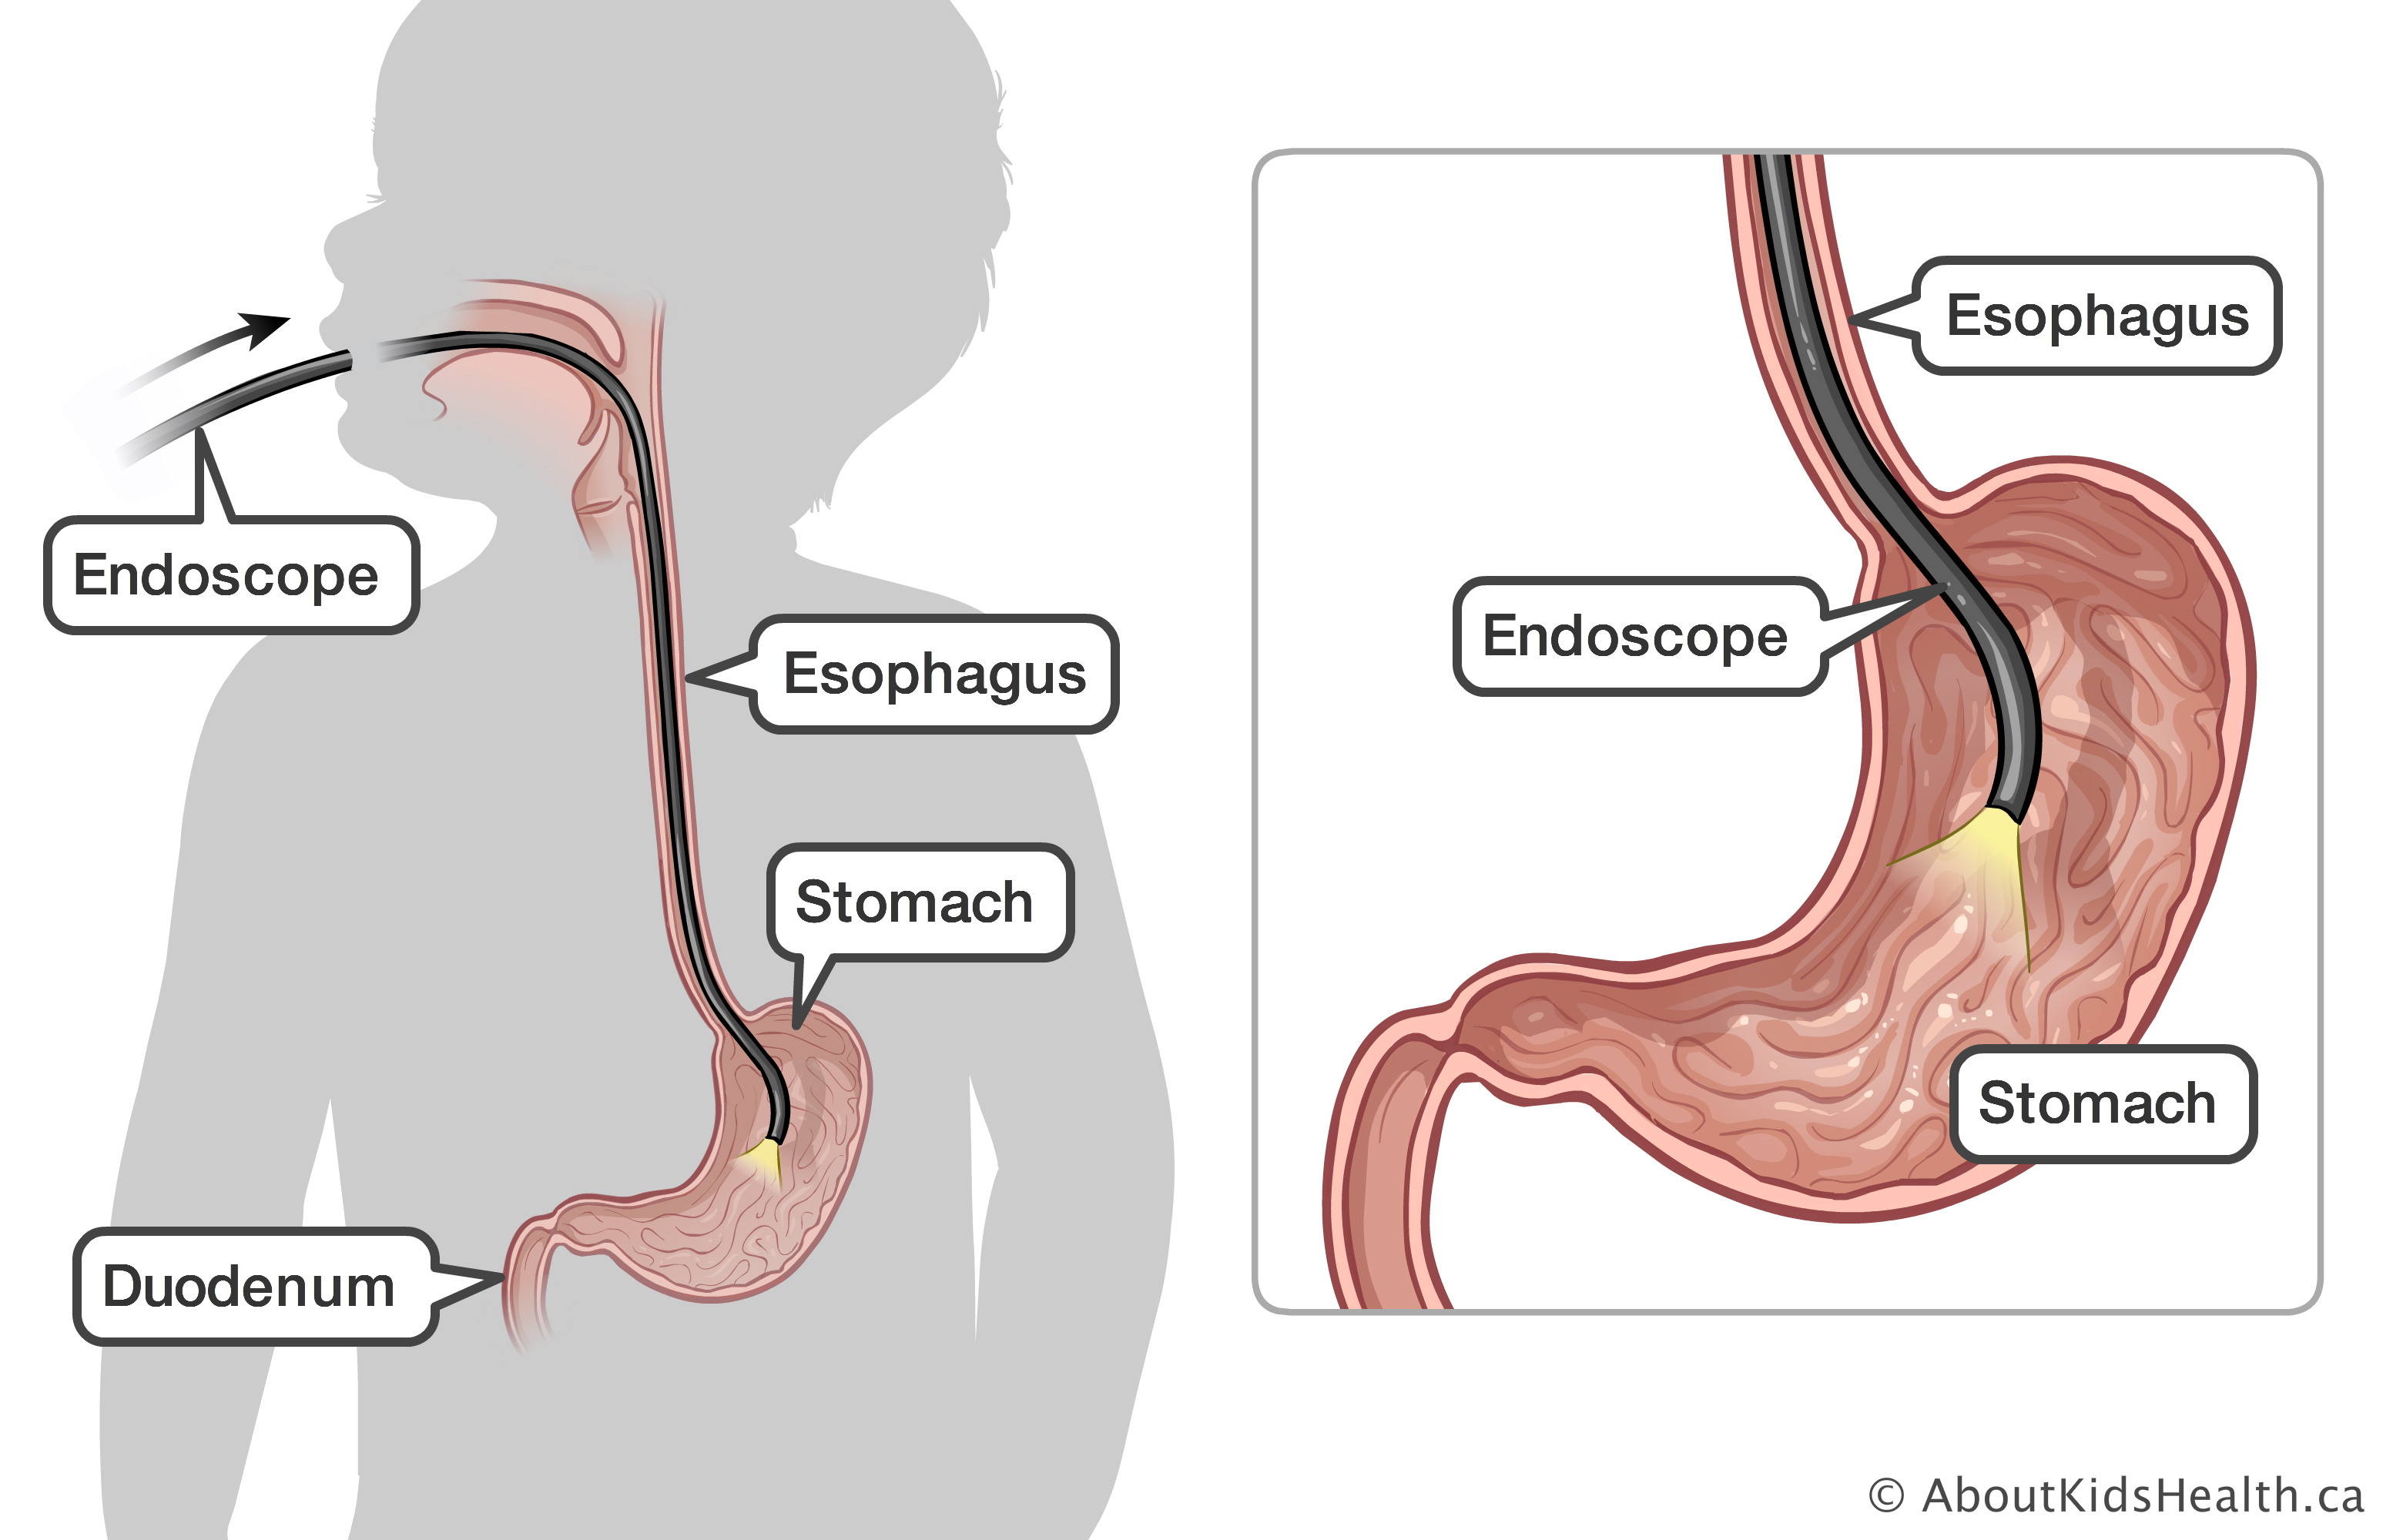 celiac disease celiac sprue disease the esophagus, stomach and duodenum are identified with endoscope inserted through the mouth and esophagus